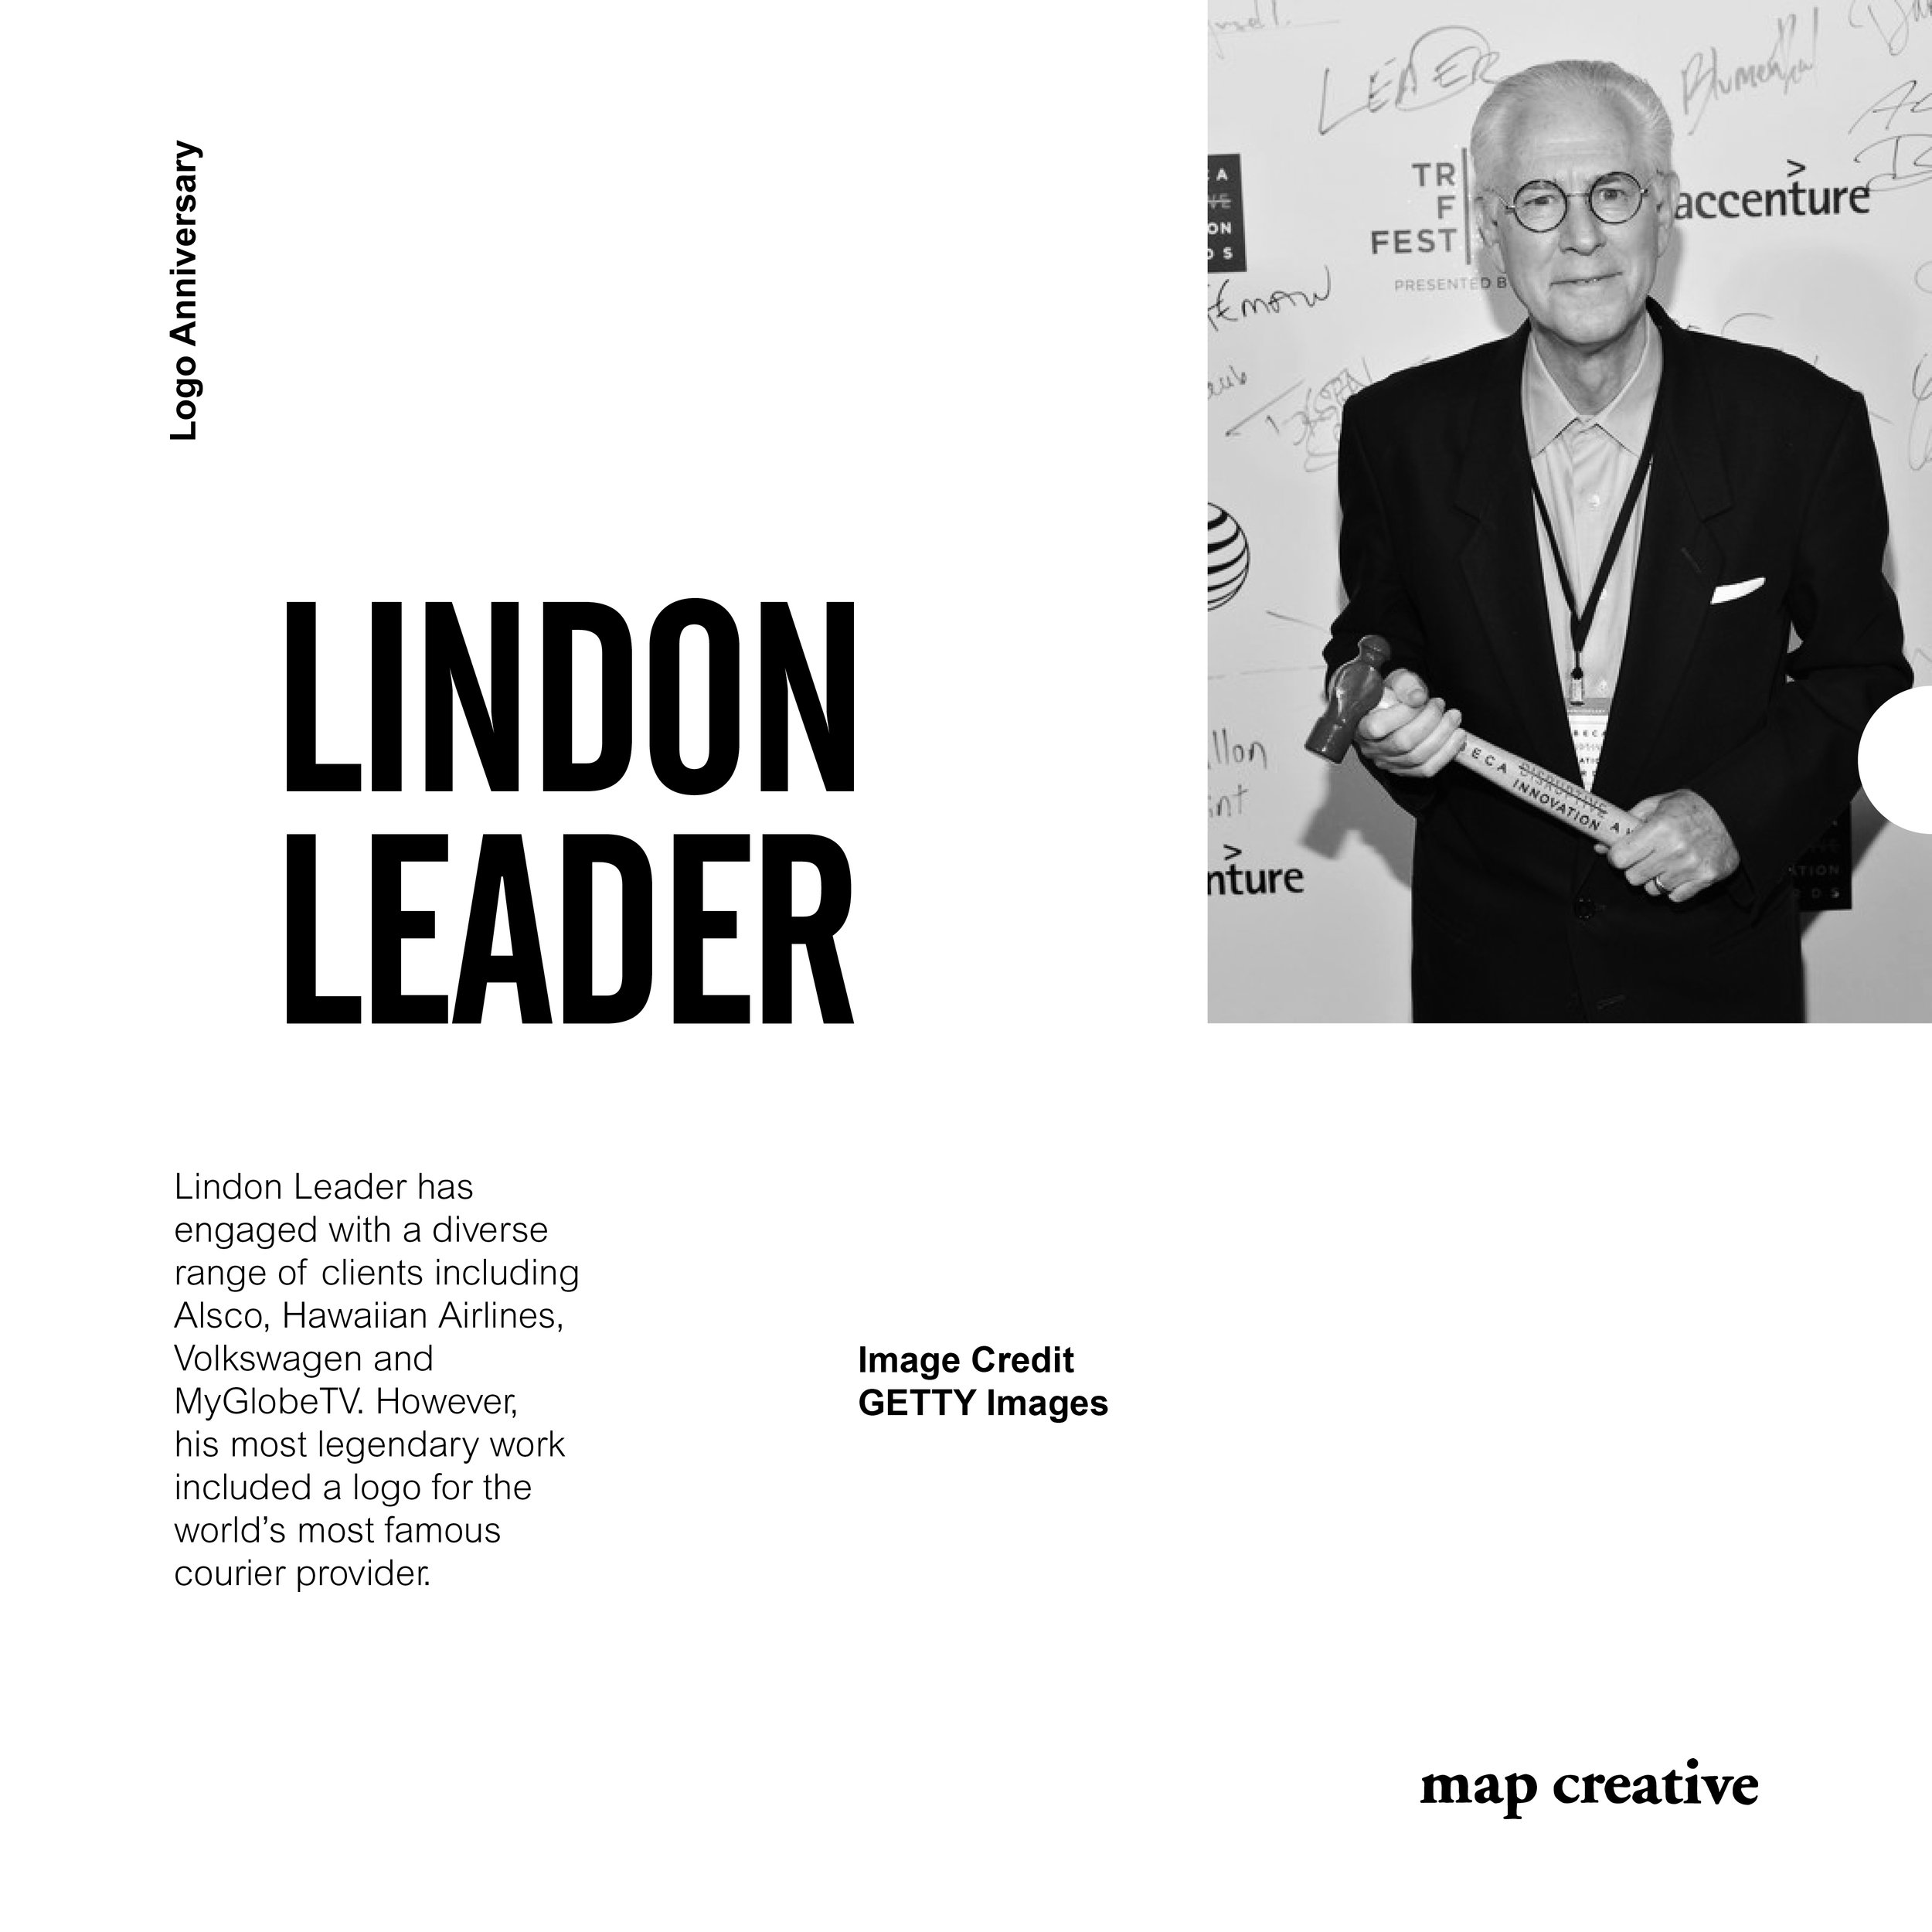 """Lindon Leader - Today we take our hats off to Lindon Leader celebrating 24 years since designing the iconic FedEx logo. Leader began by manipulating the spacing between each letter, particularly the capital E and lowercase x, """"I saw a white arrow start to appear and thought there's something there"""". Asserting the arrow implied accuracy and speed and provided a real """"aha moment"""". Lindon and associates presented their concepts to FedEx executives set on not mentioning the hidden arrow to road test its application. Incredibly, company CEO and Founder Fred Smith was the only one to see the arrow immediately and fell in love with the design. Fast forward and the logo has won over 40 design awards and assumed its position as one of the greatest trademarks of contemporary graphic design."""